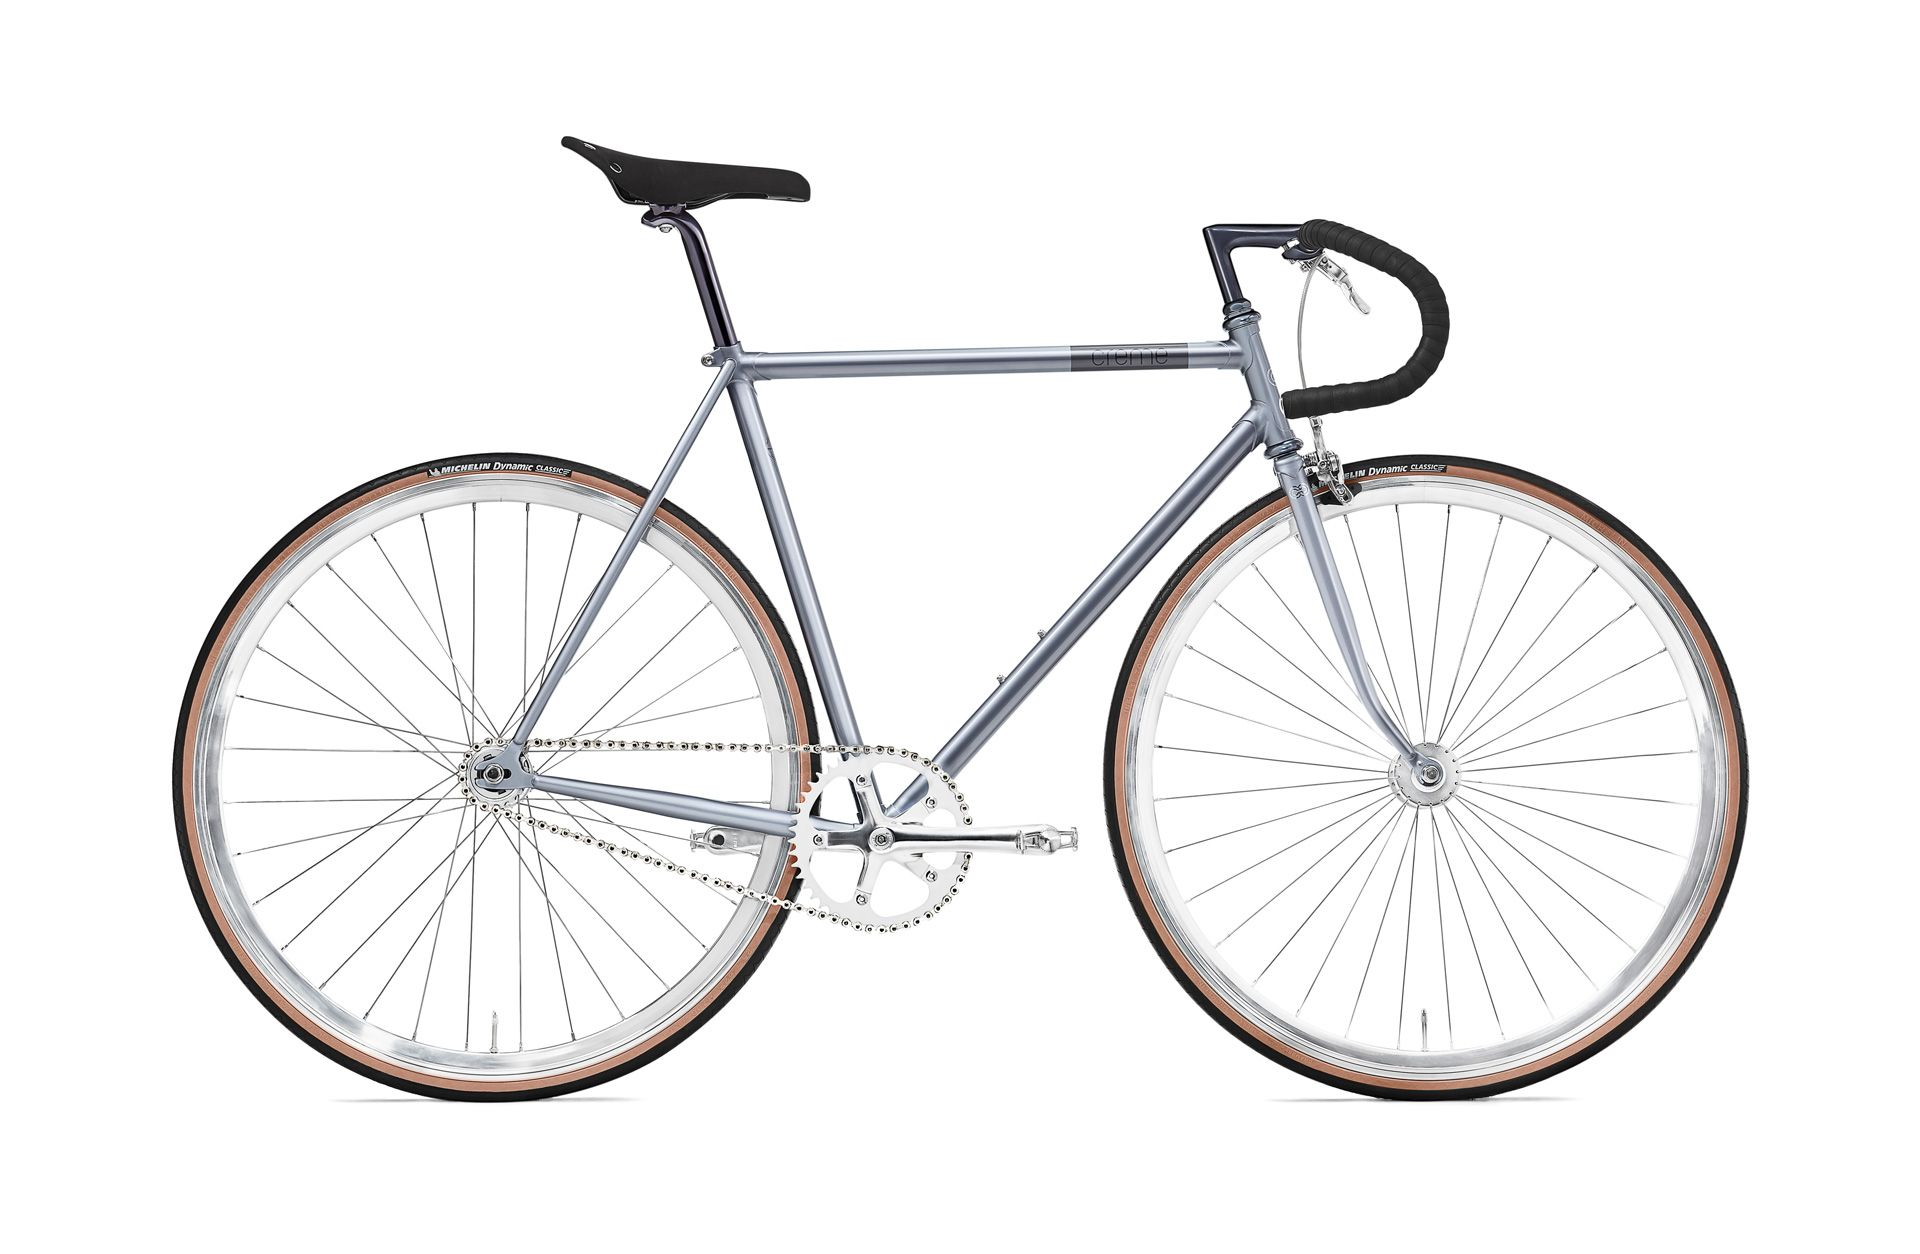 The Vinyl Solo is built around a steel frame and fork with